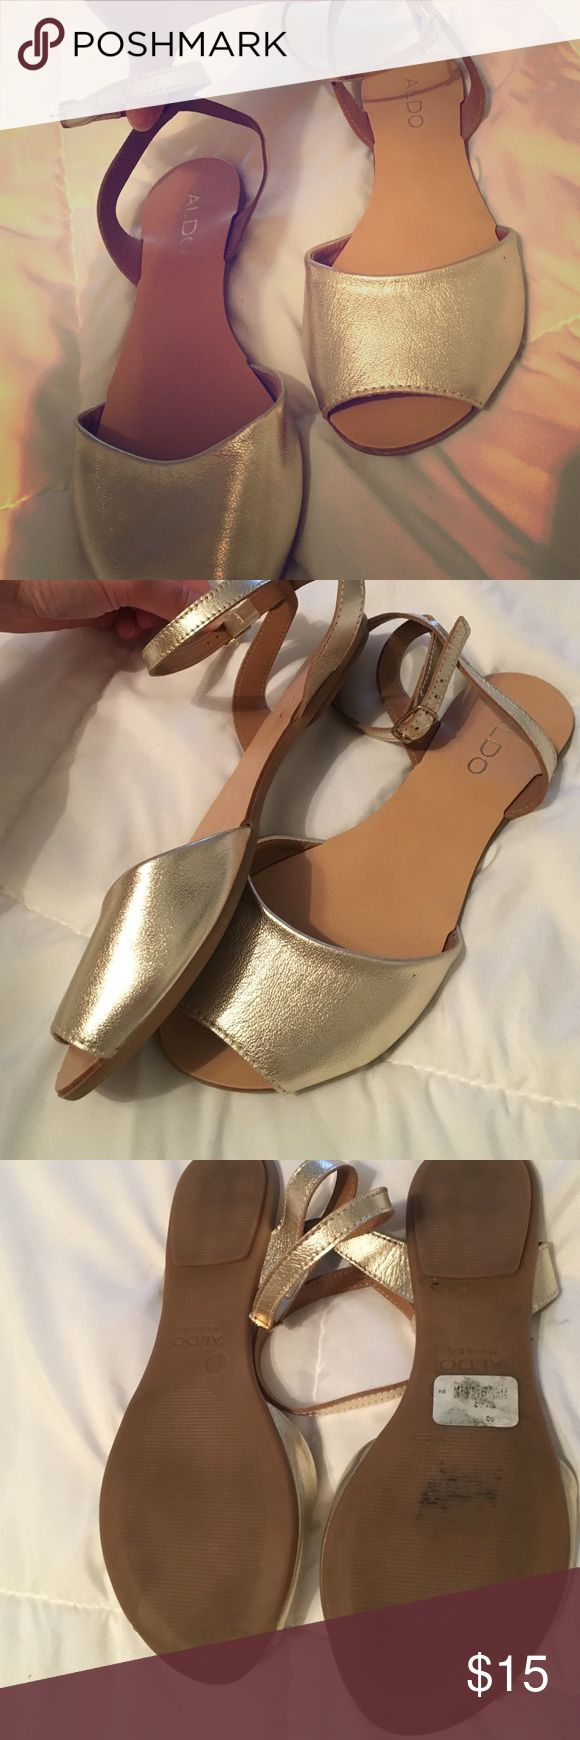 Open Toe Aldo Flats, Size 7 Champagne colored open toe flats Aldo Shoes Sandals